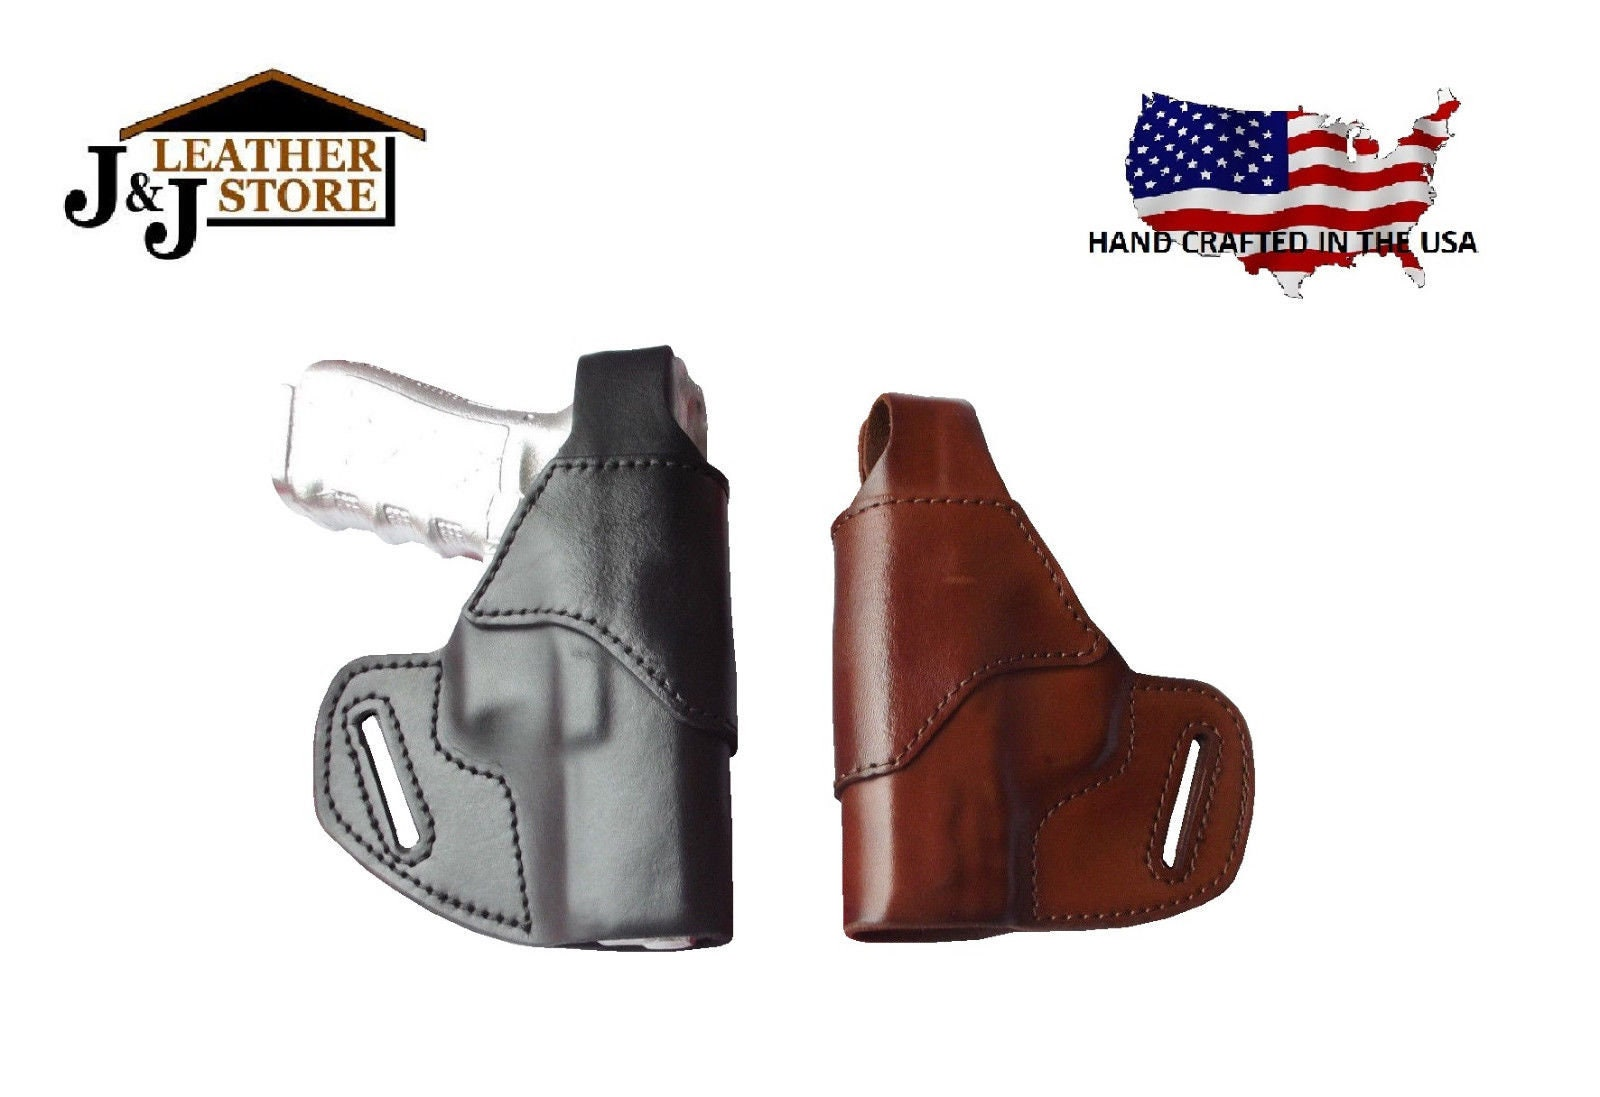 J/&J KIMBER MICRO 9 W// CRIMSON TRACE LASER GRIPS IWB FORMED LEATHER HOLSTER